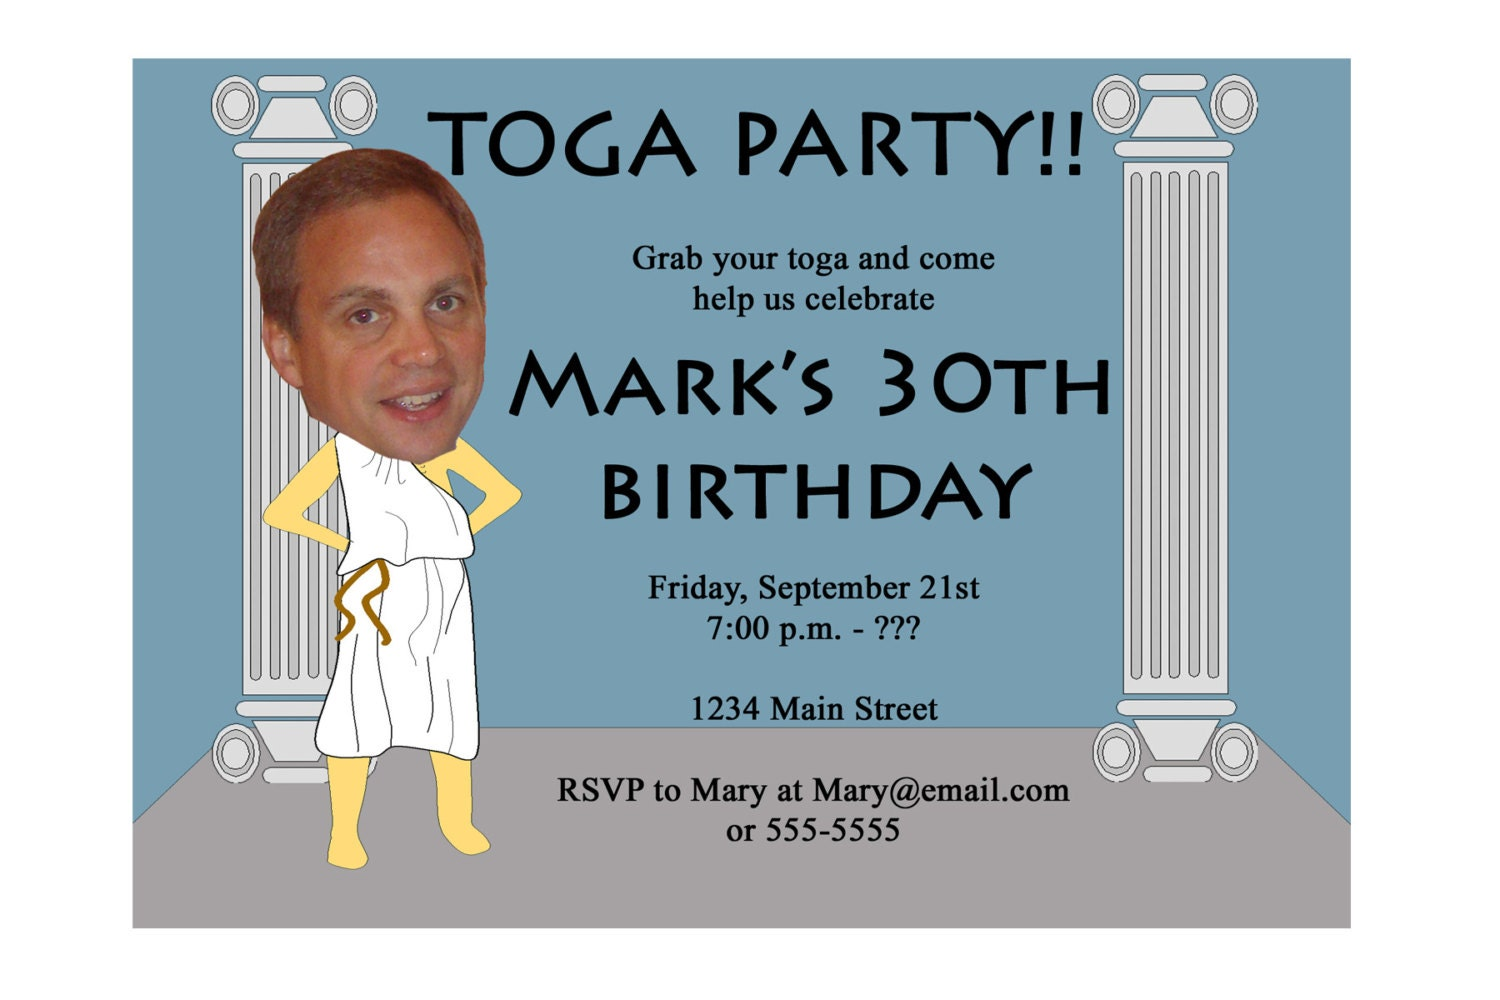 Awesome toga party invitation template gallery invitations example toga party invitation funny unique digital printable great stopboris Images